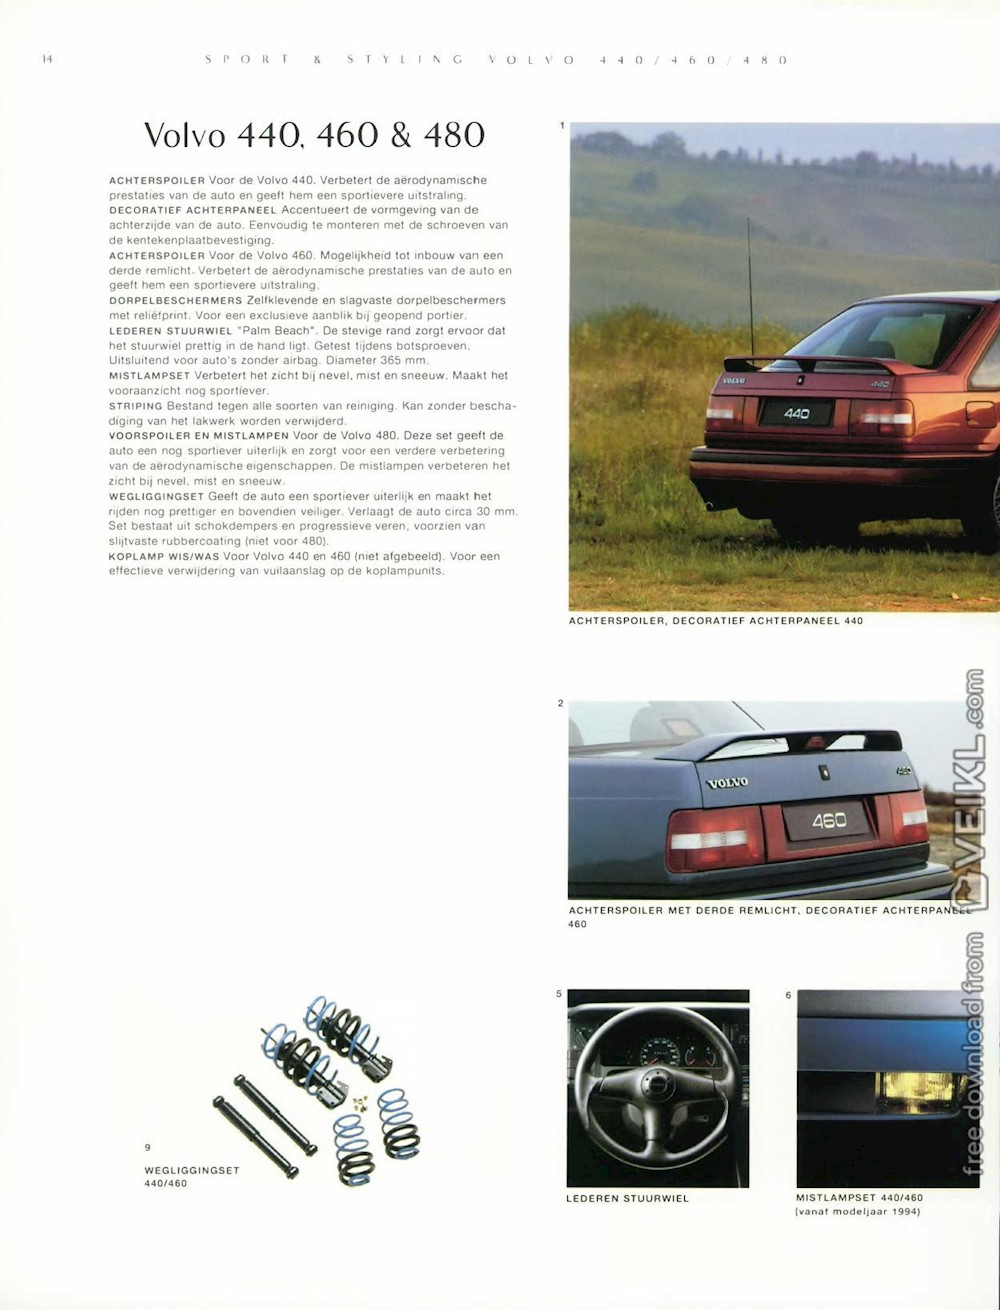 Volvo Full Range Accessories Brochure 1996 NL